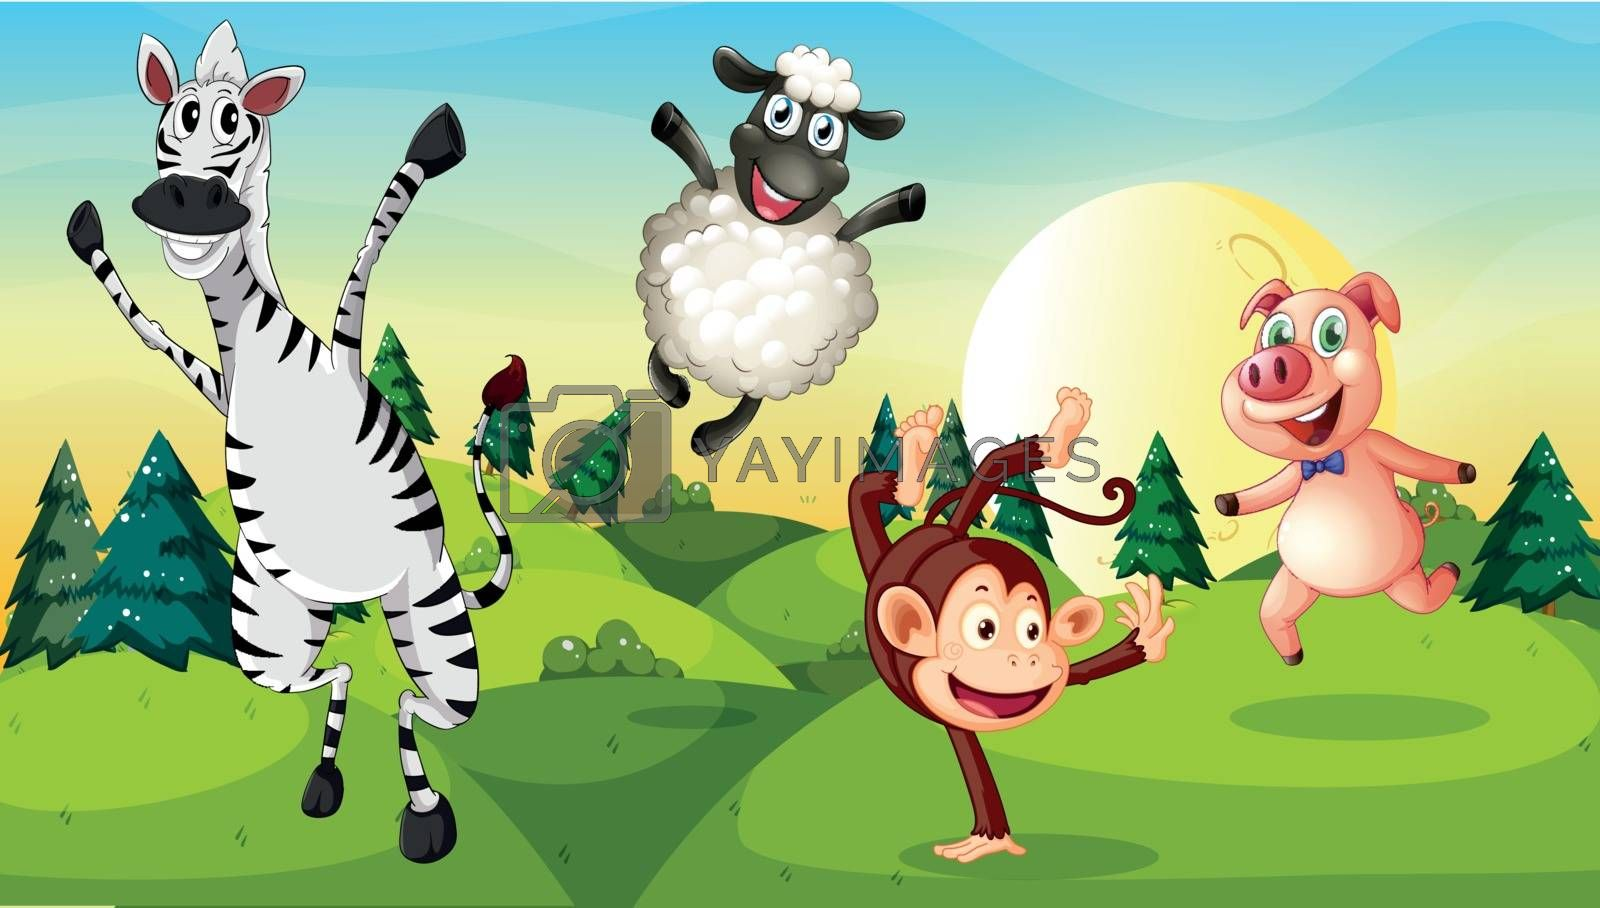 Illustration of a hilltop with playful animals